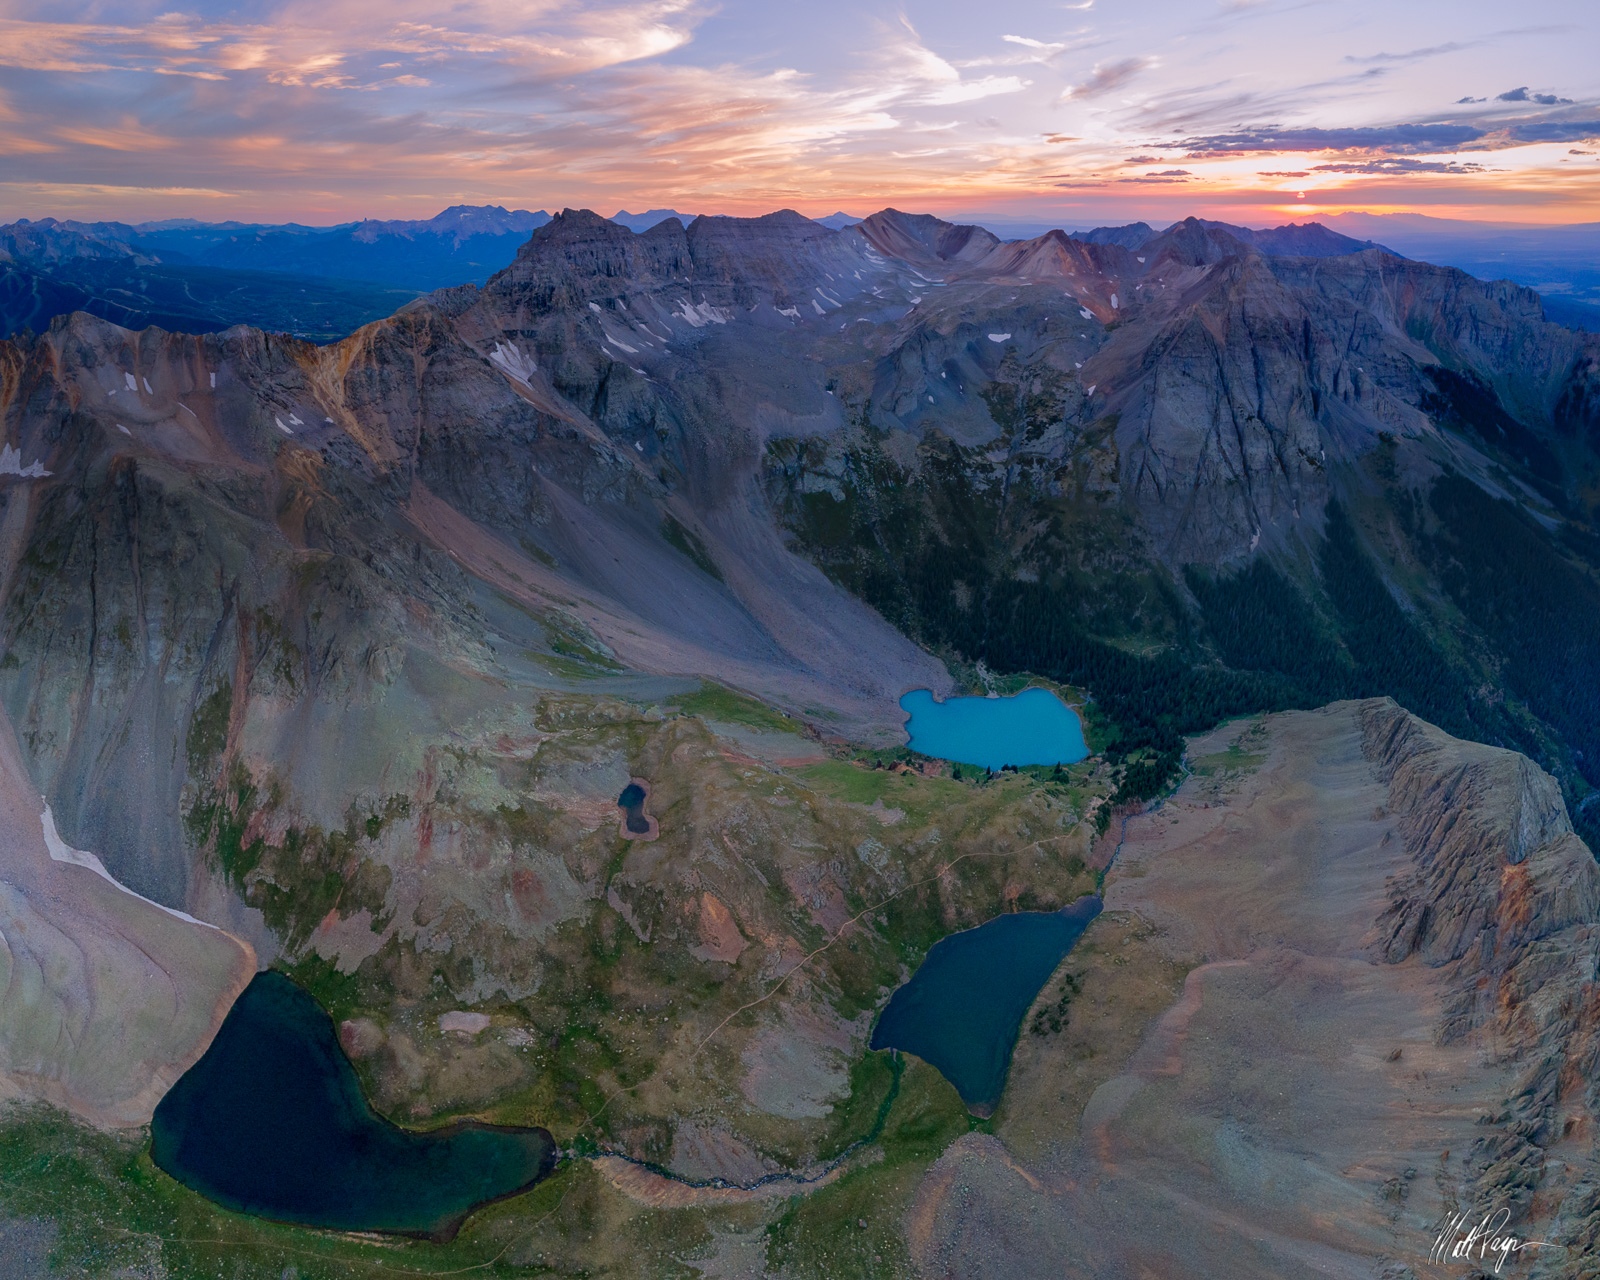 A high vantage view of some of my favorite mountains in the San Juan Mountains at sunset. These peaks tower above the popular...